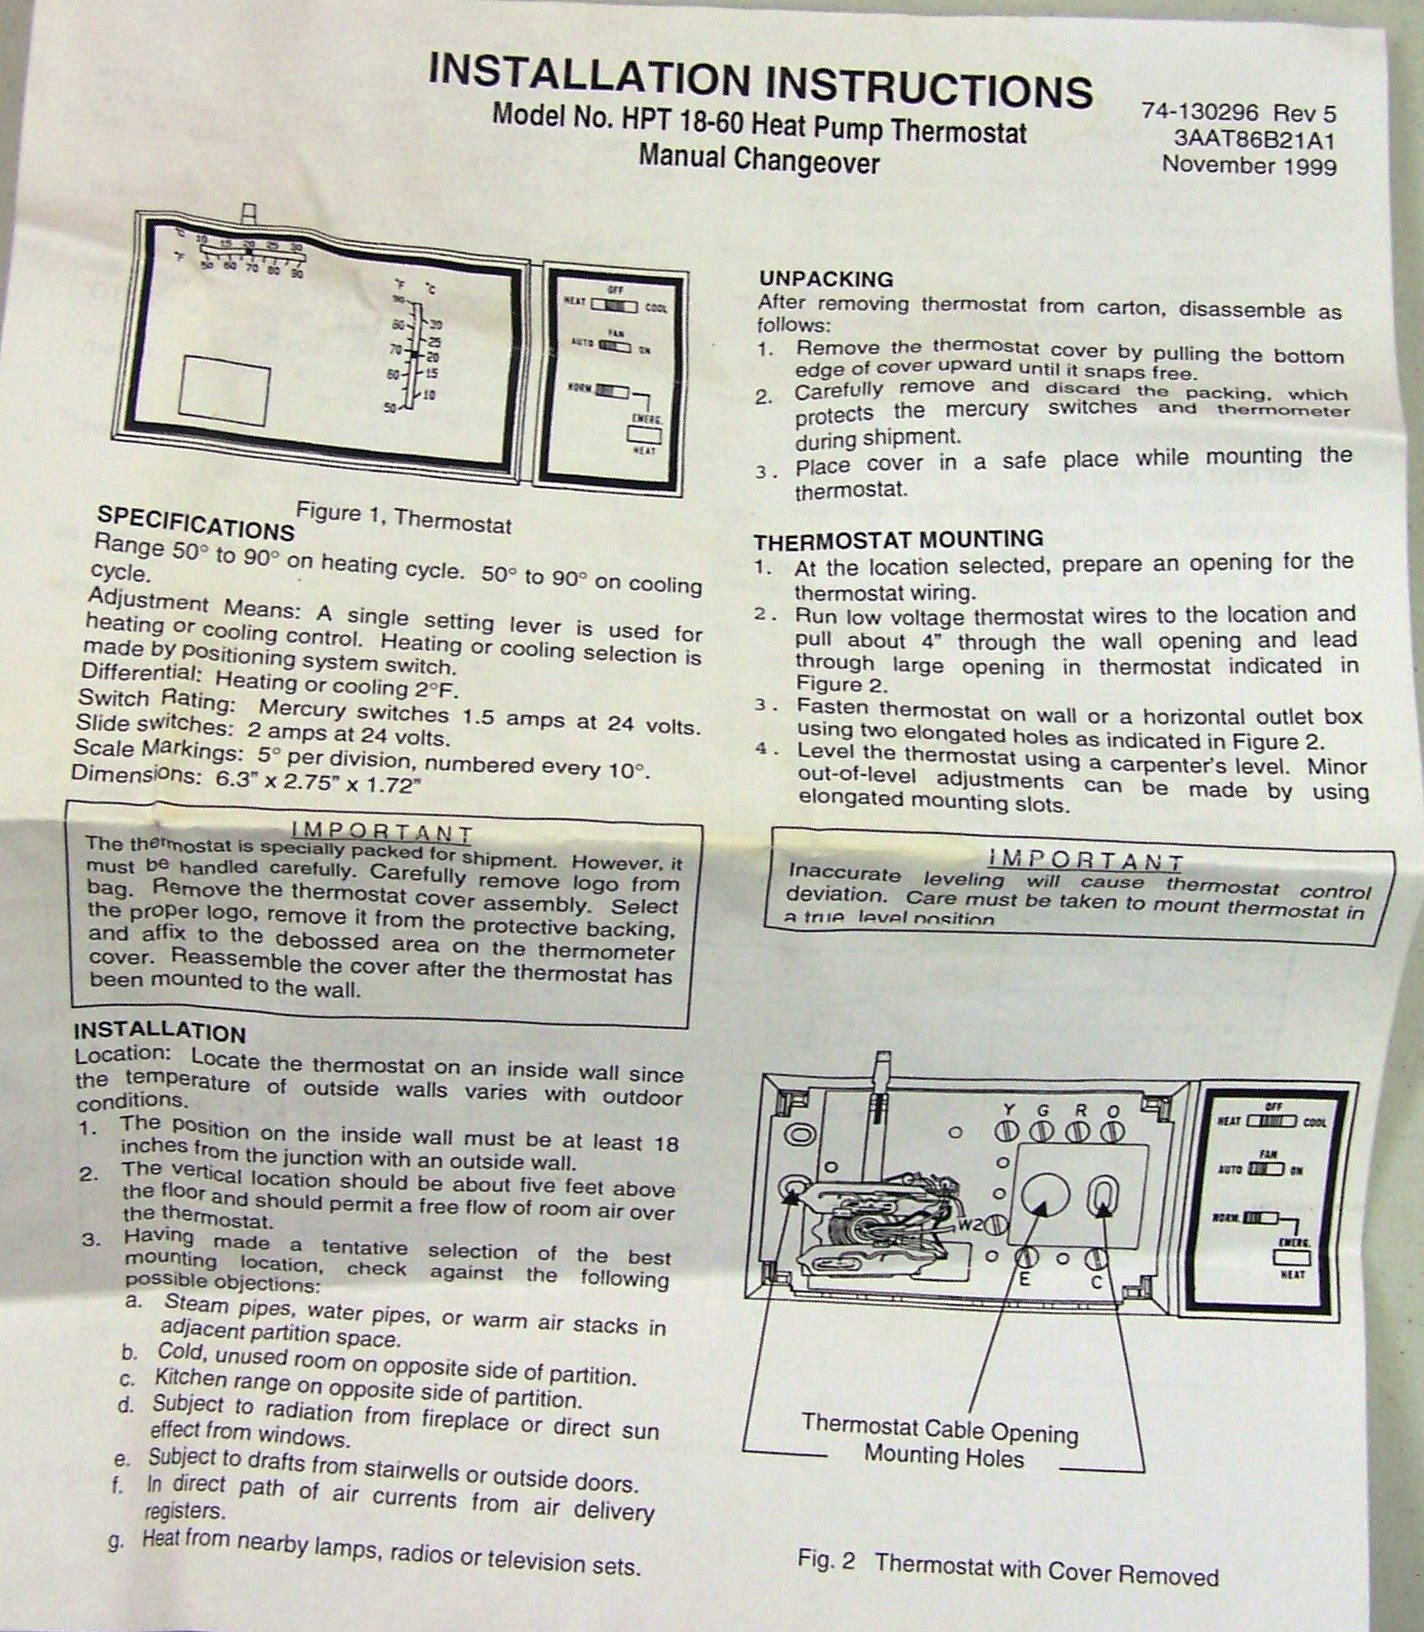 janitrol 18 60 thermostat wiring diagram wire diagram ford f100  hpt18 60 goodman heat pump thermostat with emergency heat 101 7863 hpt18 60html janitrol 18 60 thermostat wiring diagram janitrol 18 60 thermostat wiring